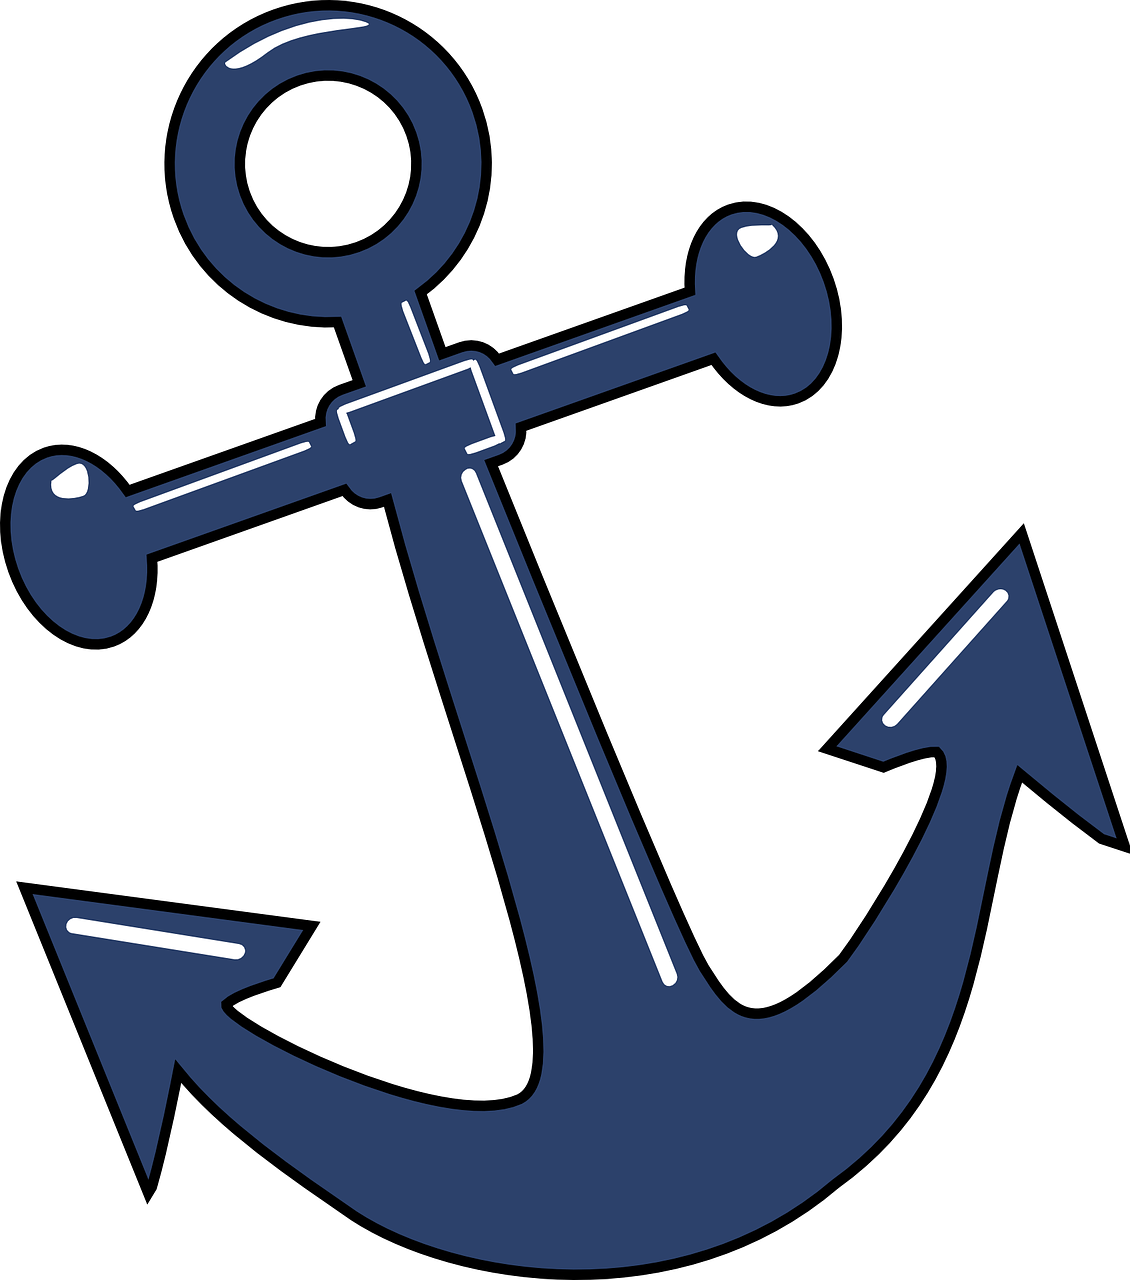 Clipart anchor hope.